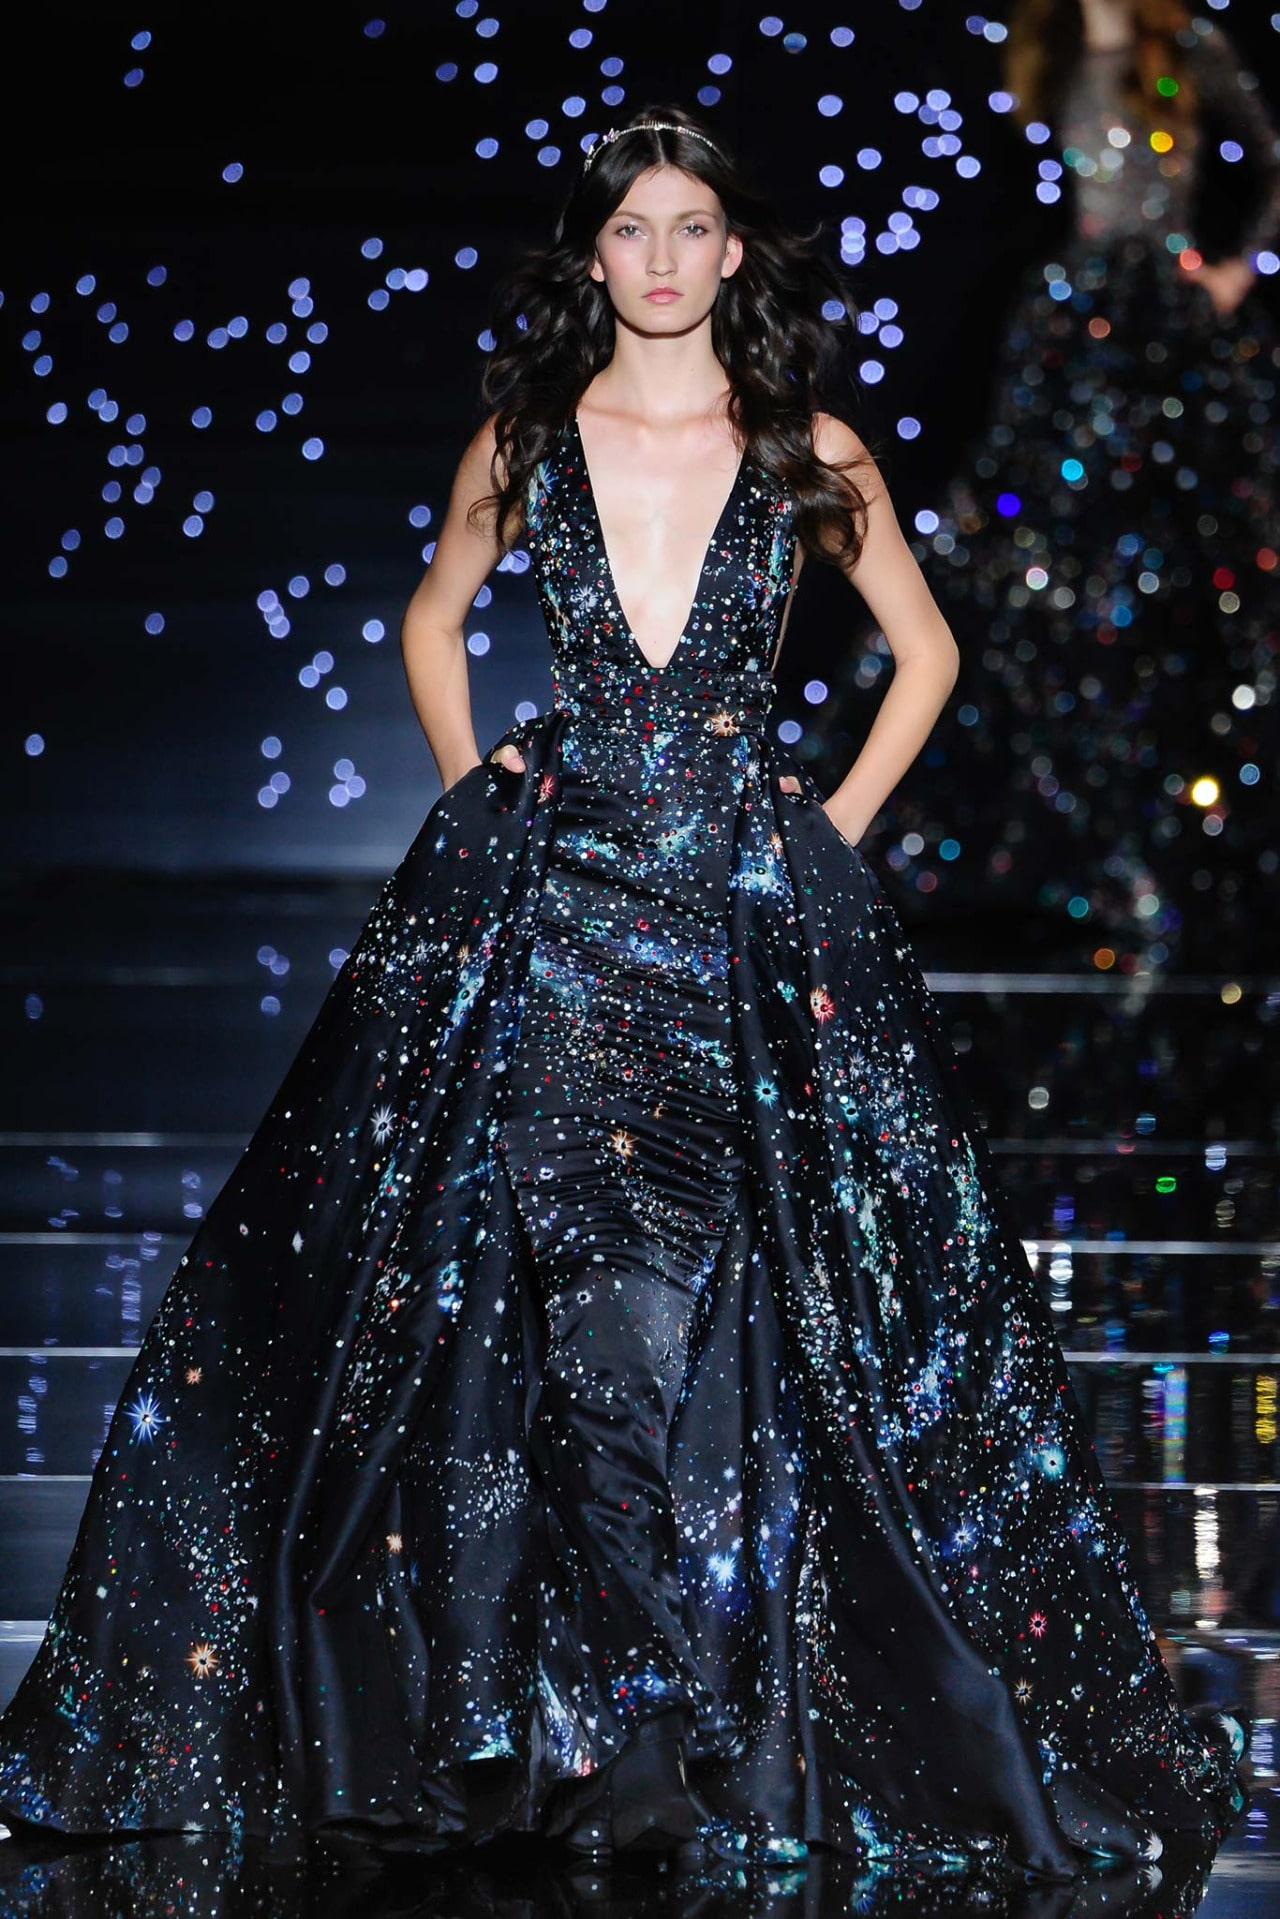 zuhair-murad-fall-2015-collection-3